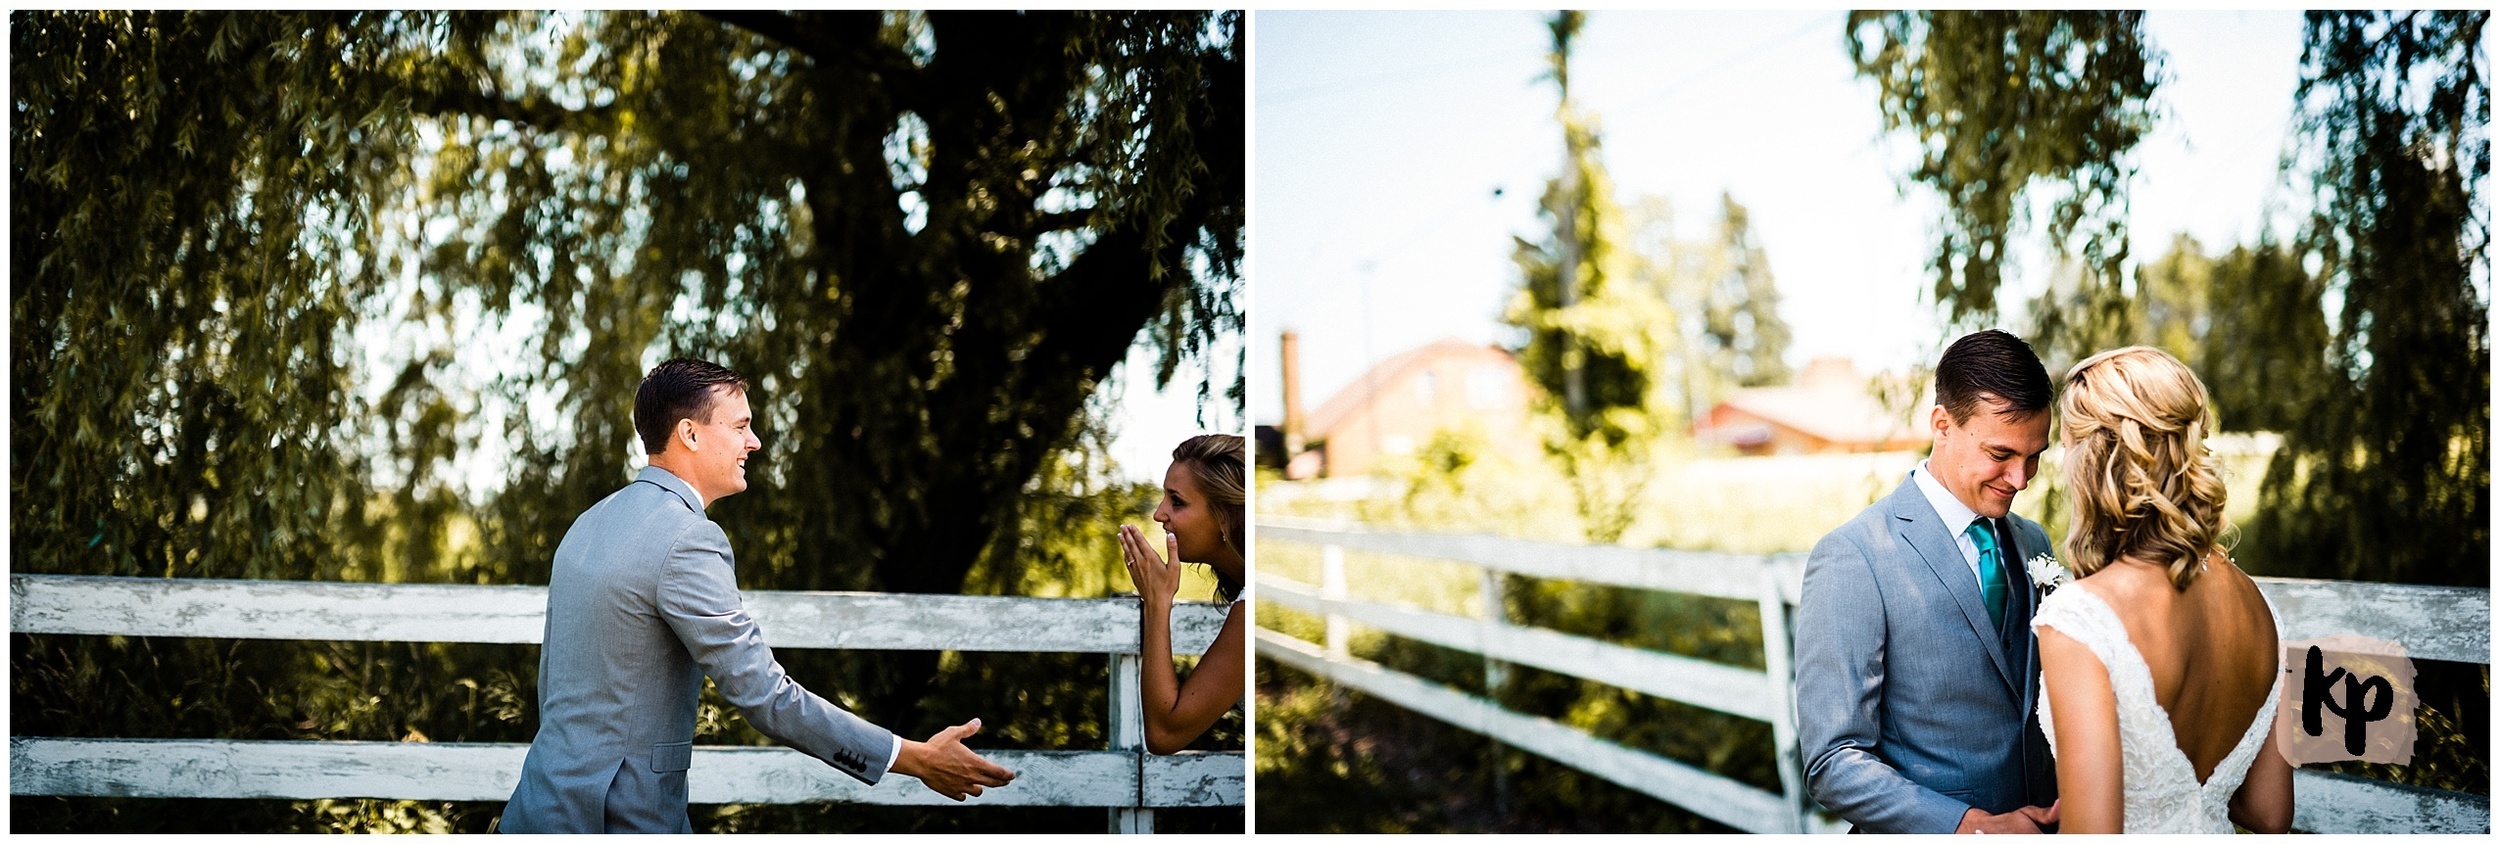 Andrew + Jessica | Just Married #kyleepaigephotography_0157.jpg